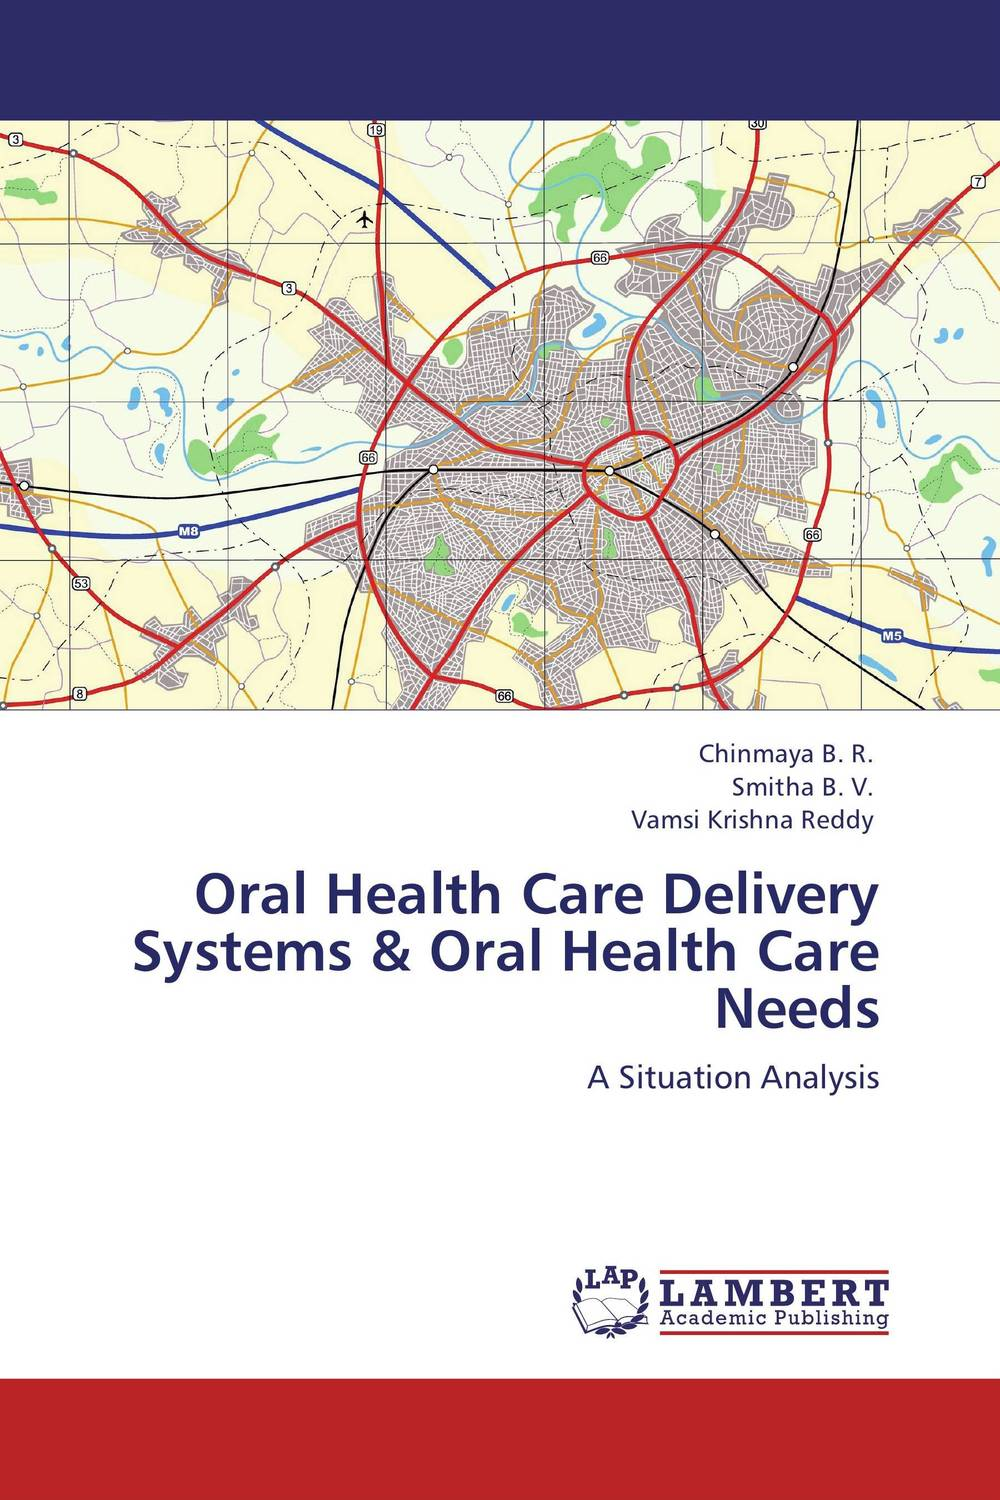 Oral Health Care Delivery Systems & Oral Health Care Needs psychiatric consultation in long term care